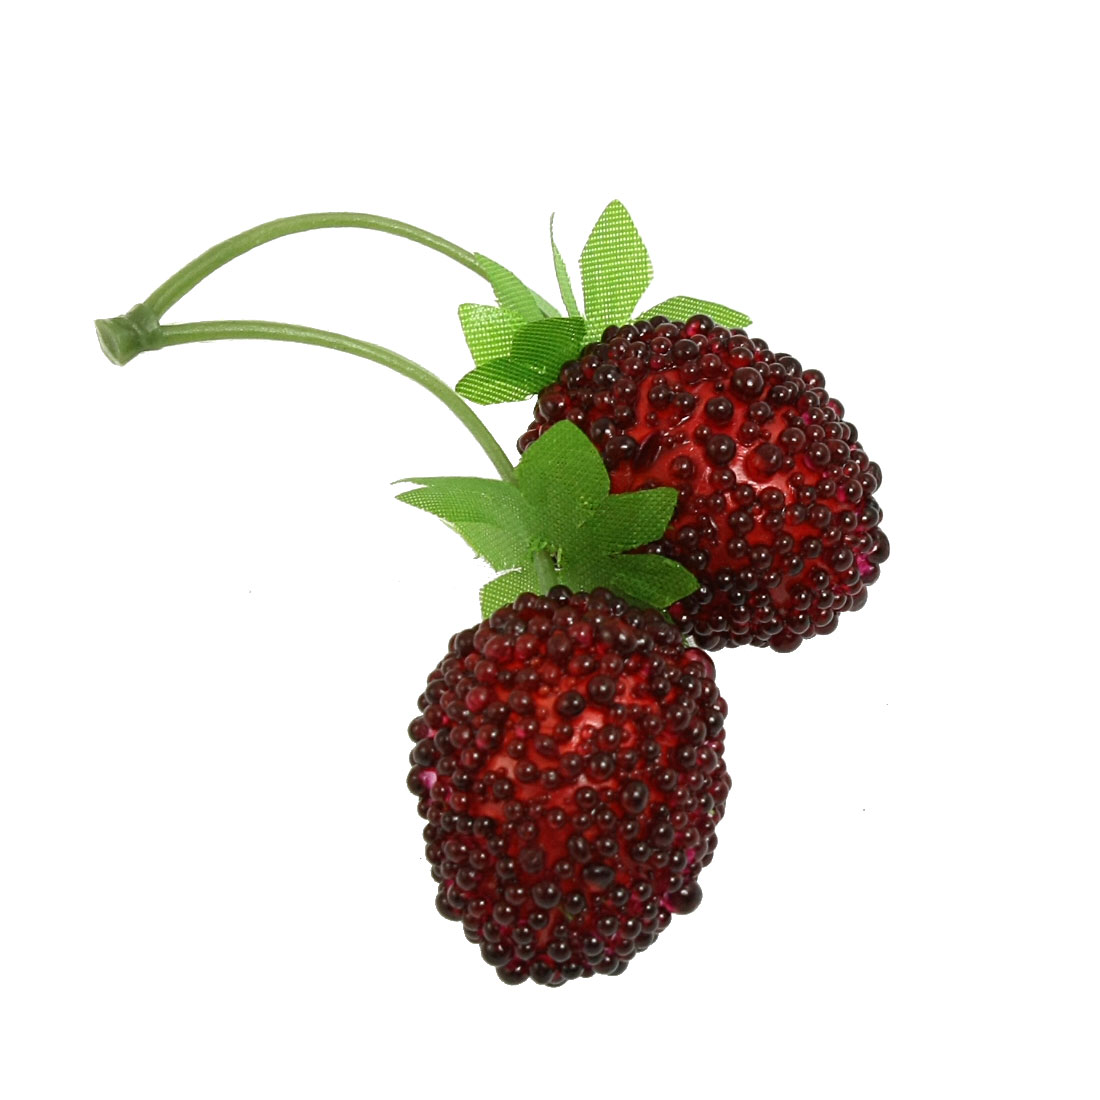 Unique Bargains Manmade Bunch Red Bayberries Green Leaves Fruit Decor Adornment